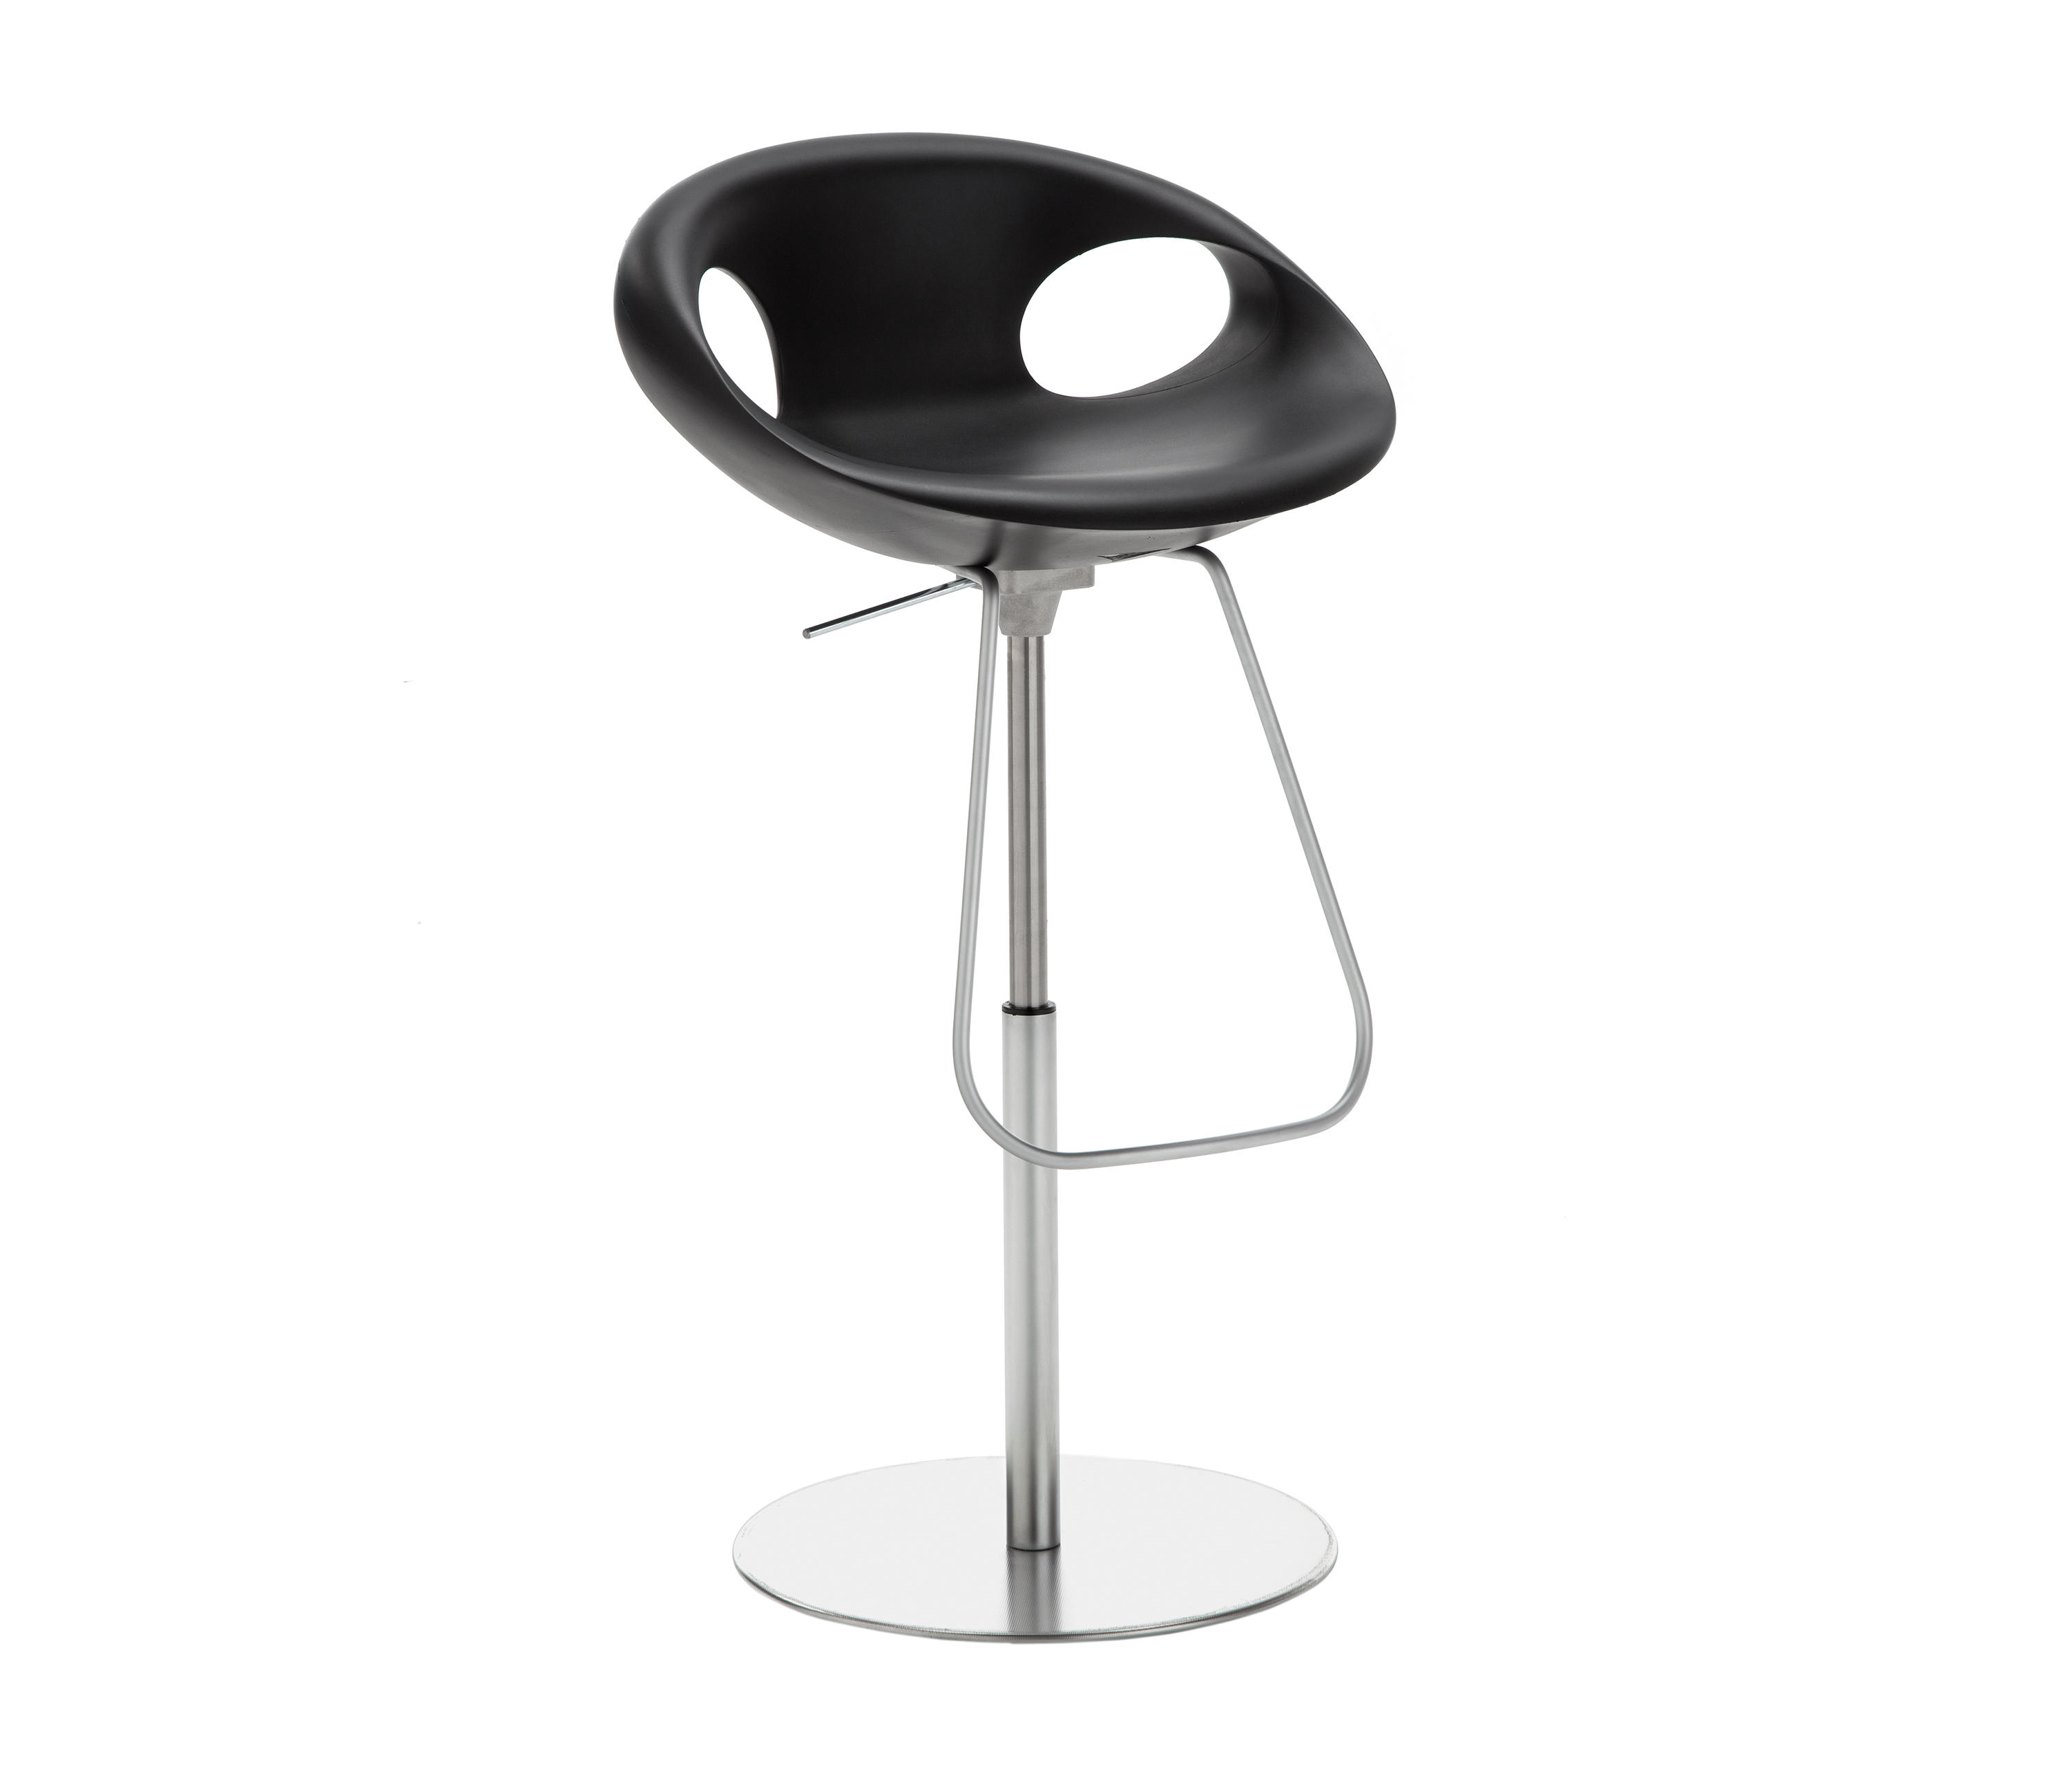 up chair i 907 bar stools from tonon architonic. Black Bedroom Furniture Sets. Home Design Ideas